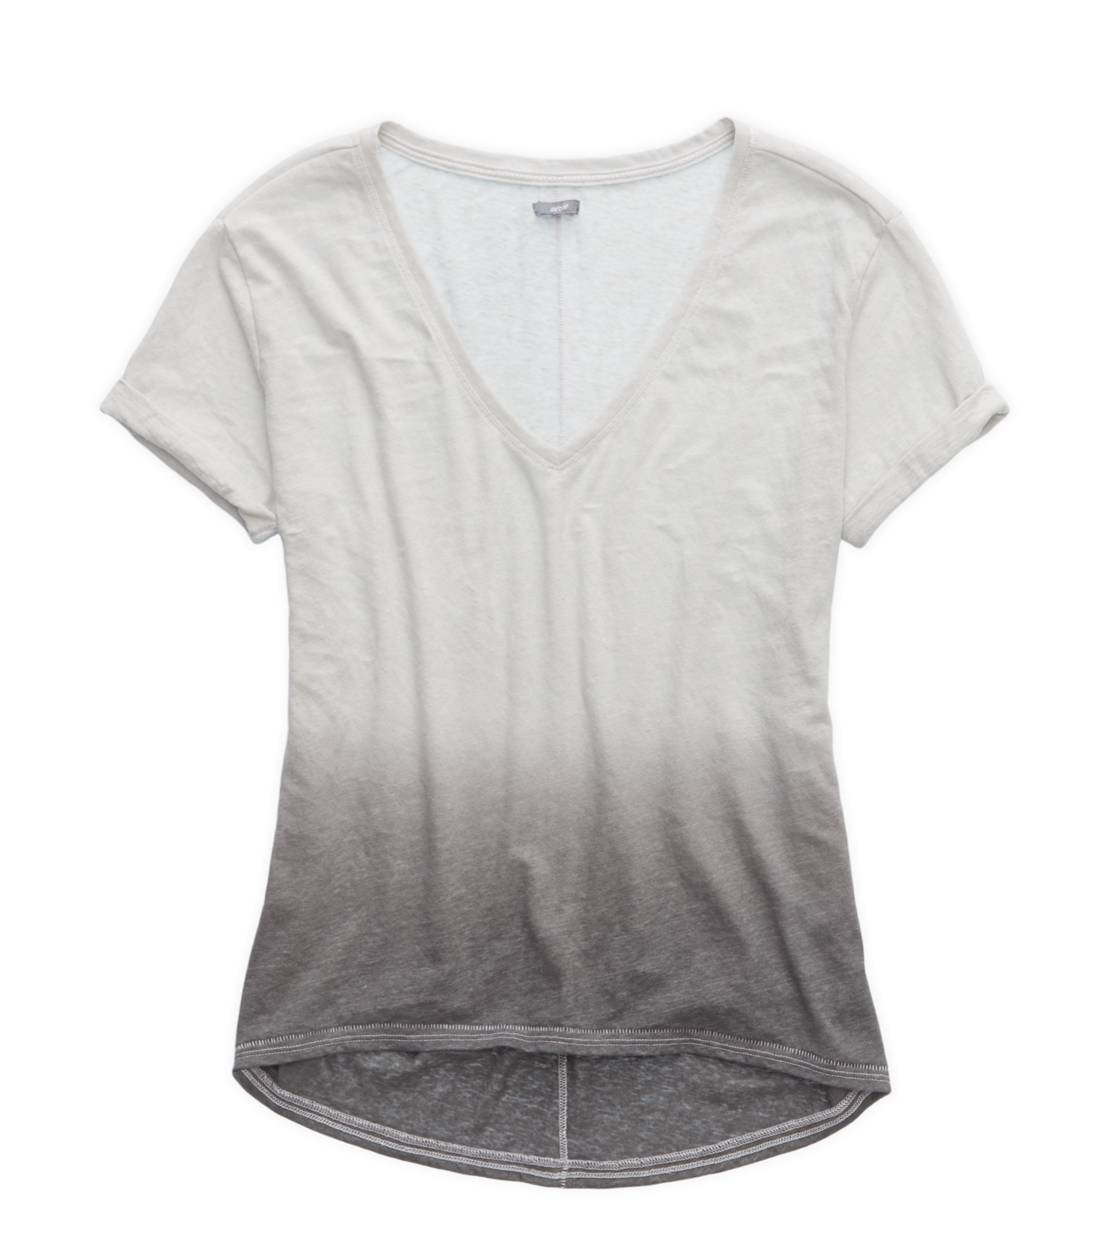 Pewter Aerie Deep V-Neck Oversized Dip Dye T-Shirt